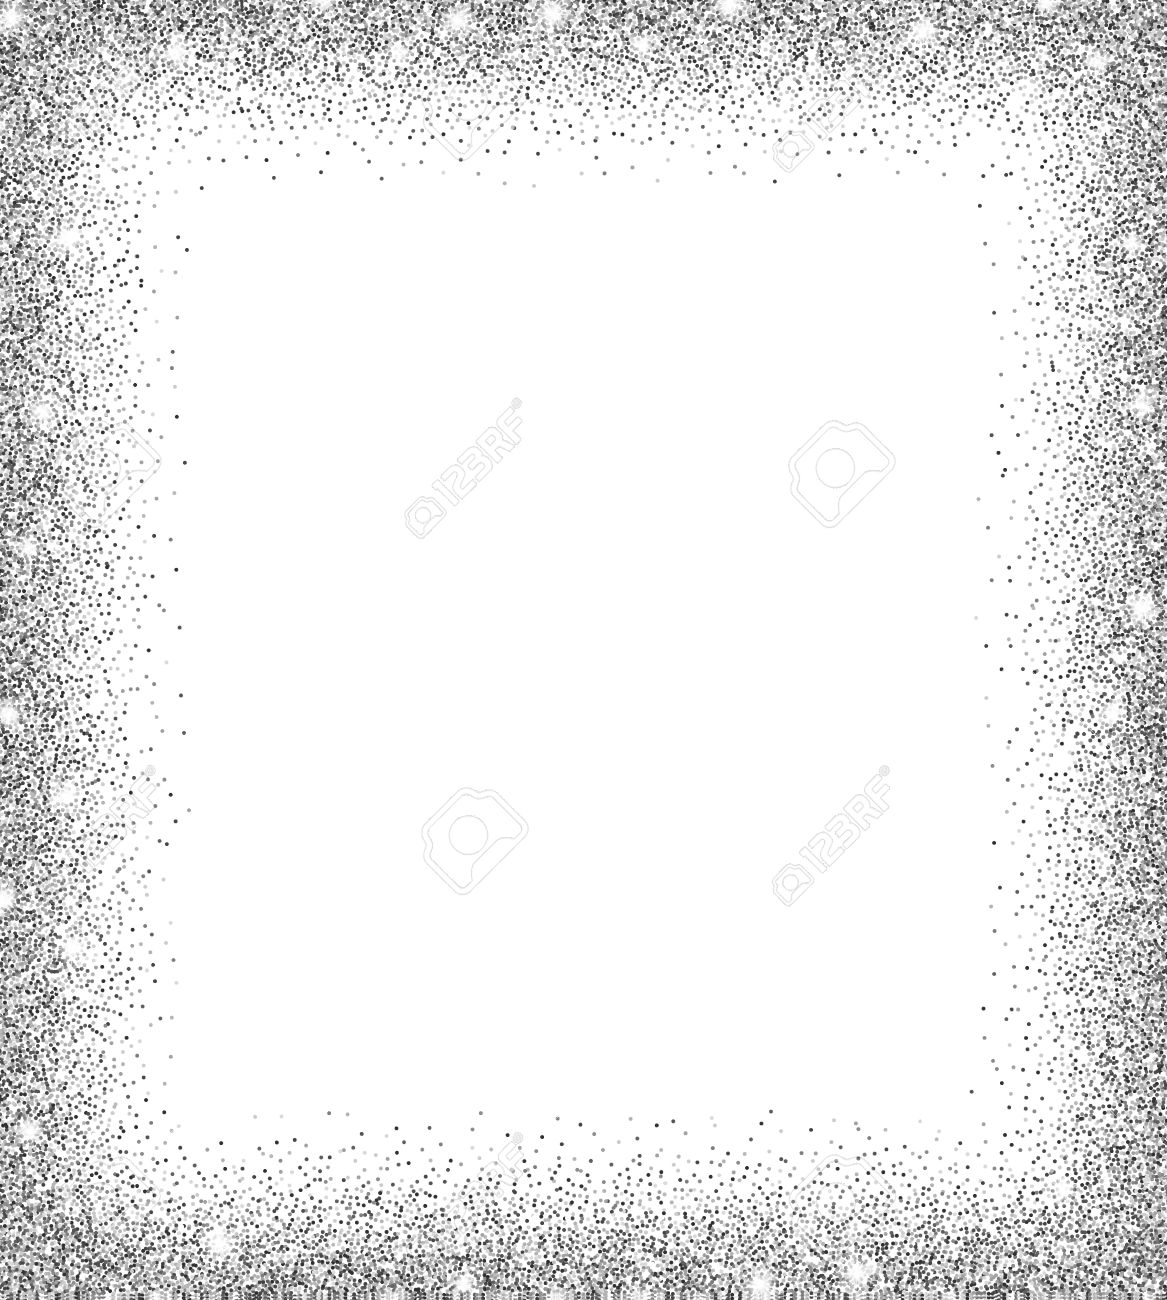 Silver glitter background silver sparkles on white background silver glitter background silver sparkles on white background creative invitation for party holiday stopboris Images